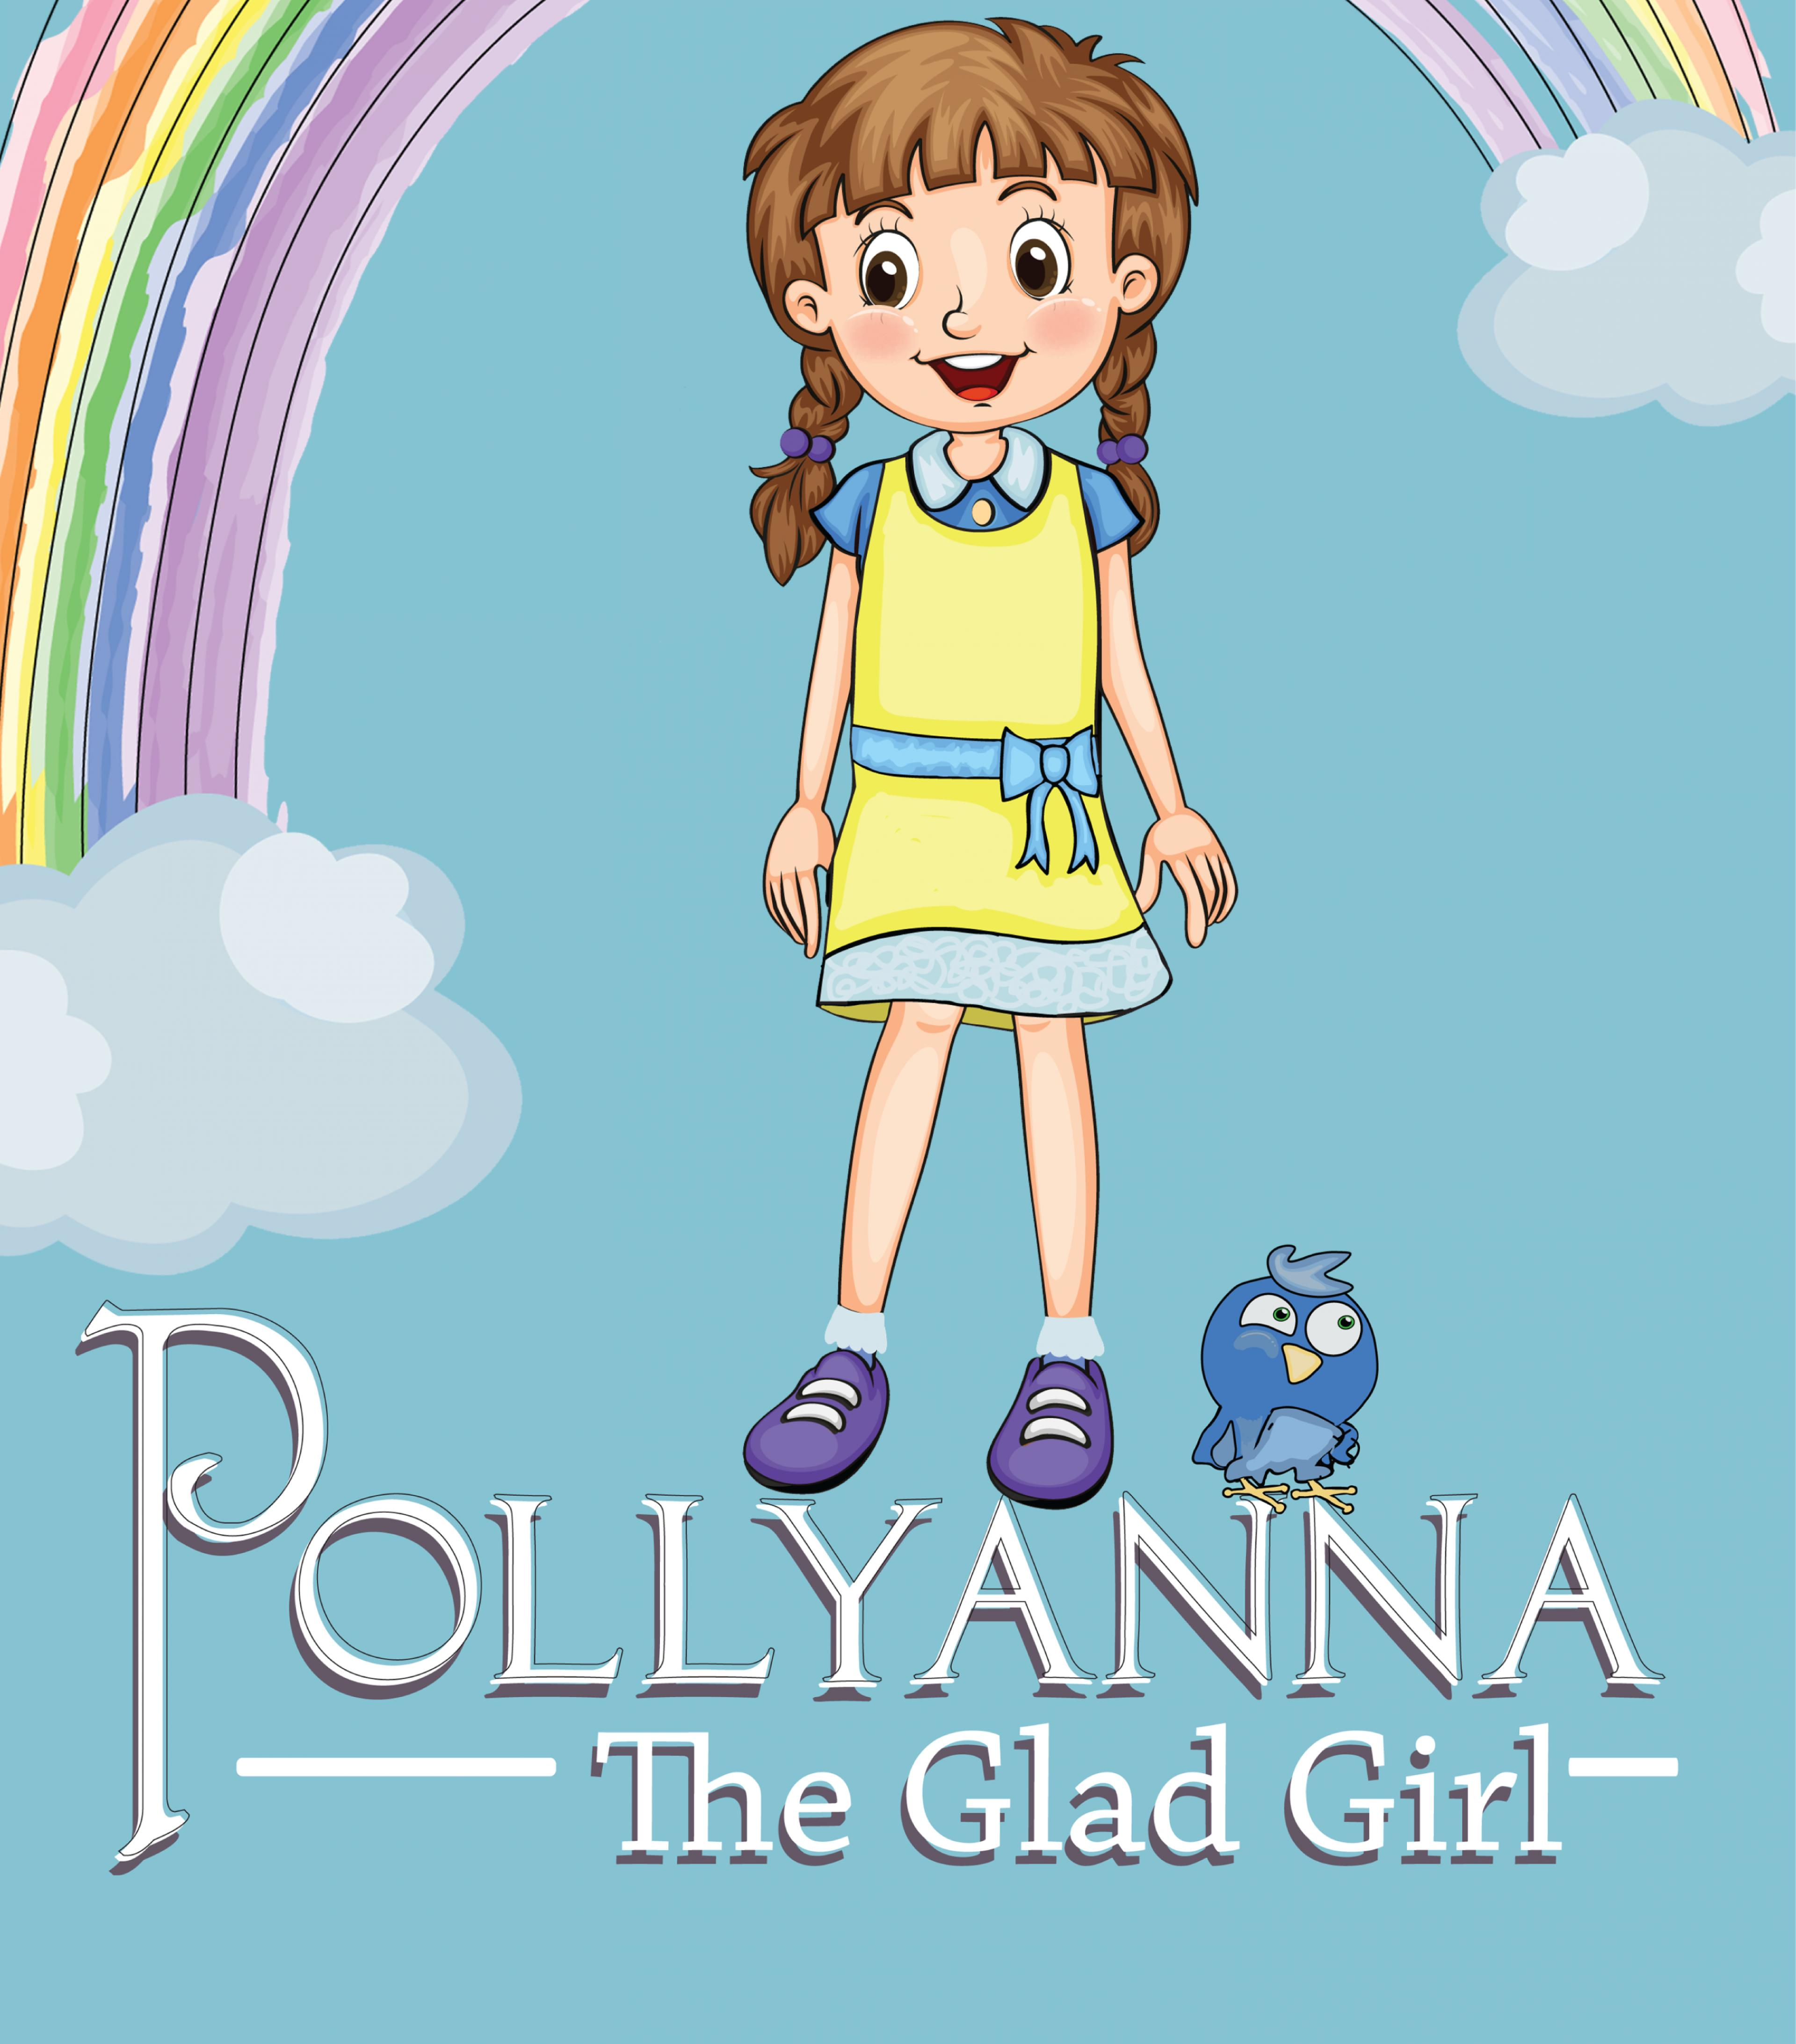 publicity image for Pollyanna